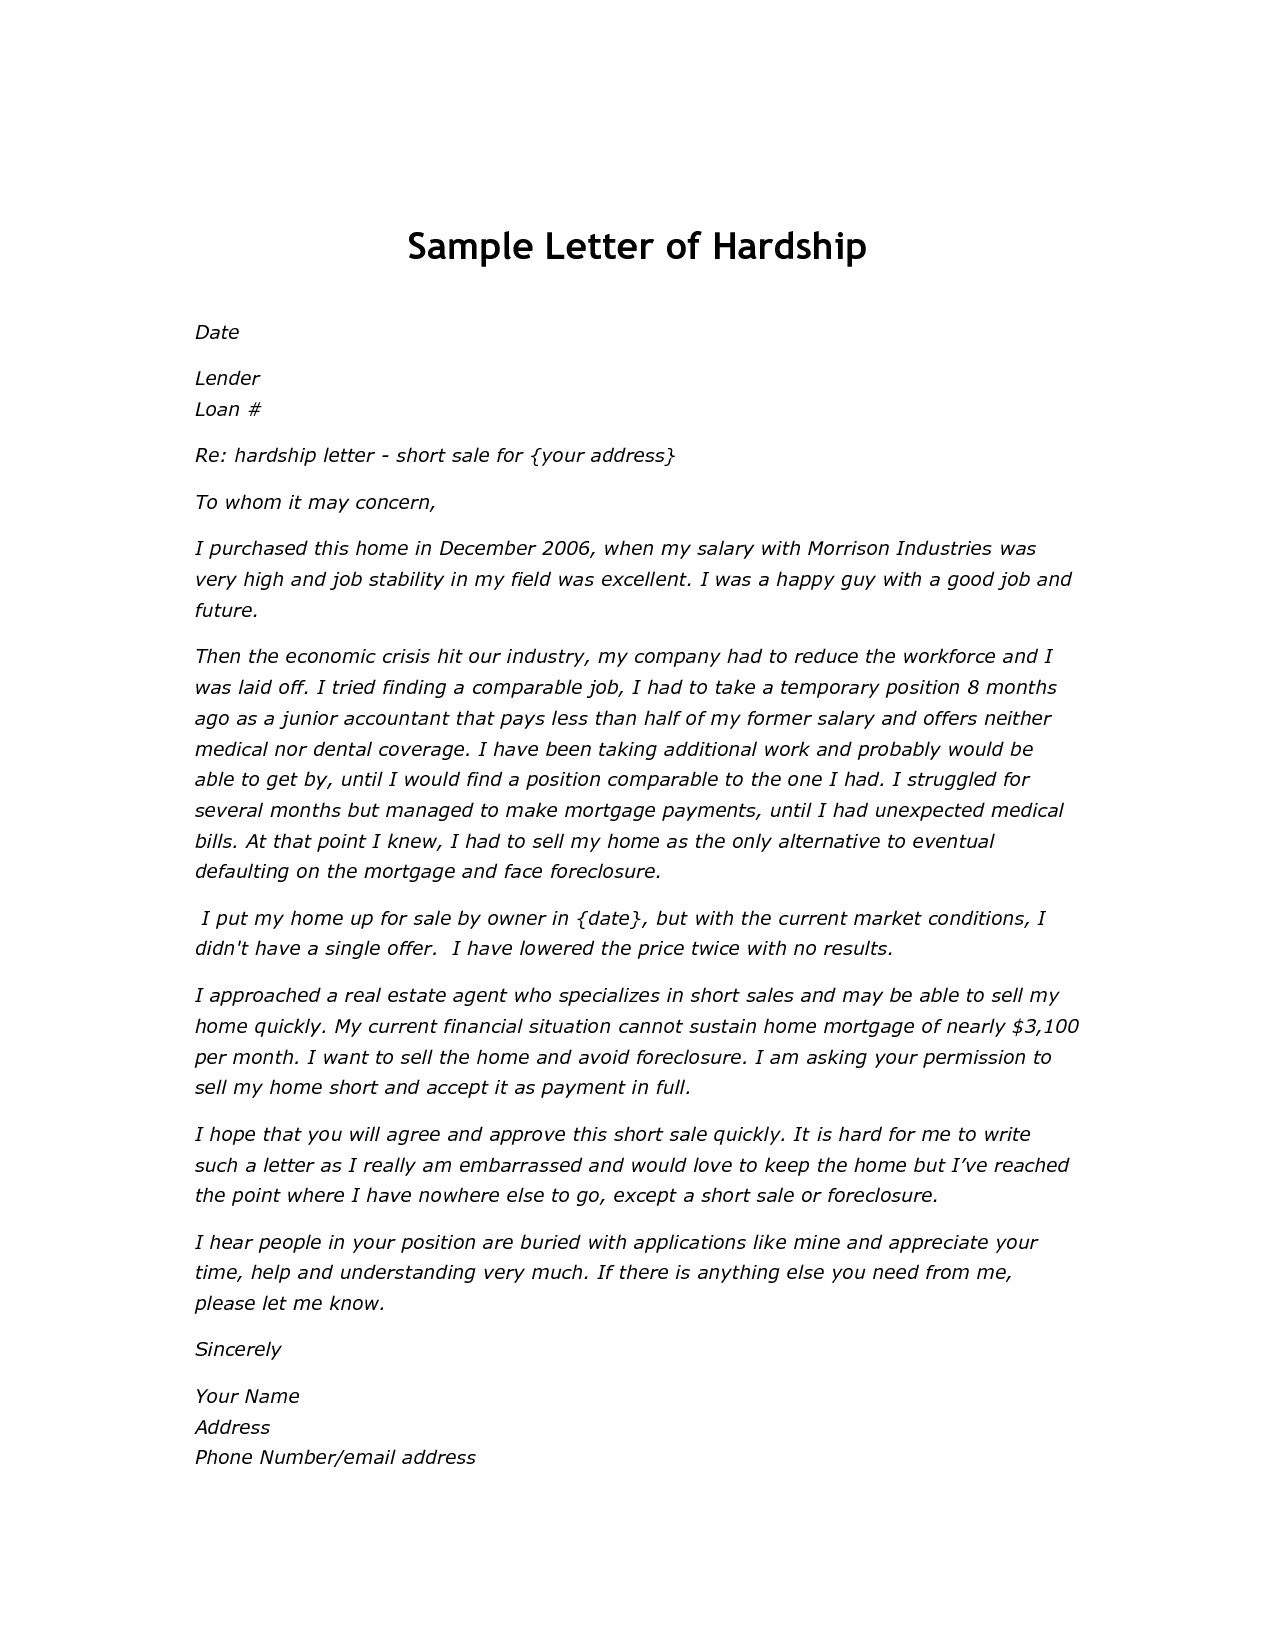 Financial Hardship Letter Template - How to Write A Hardship Letter for A Short Sale Letter